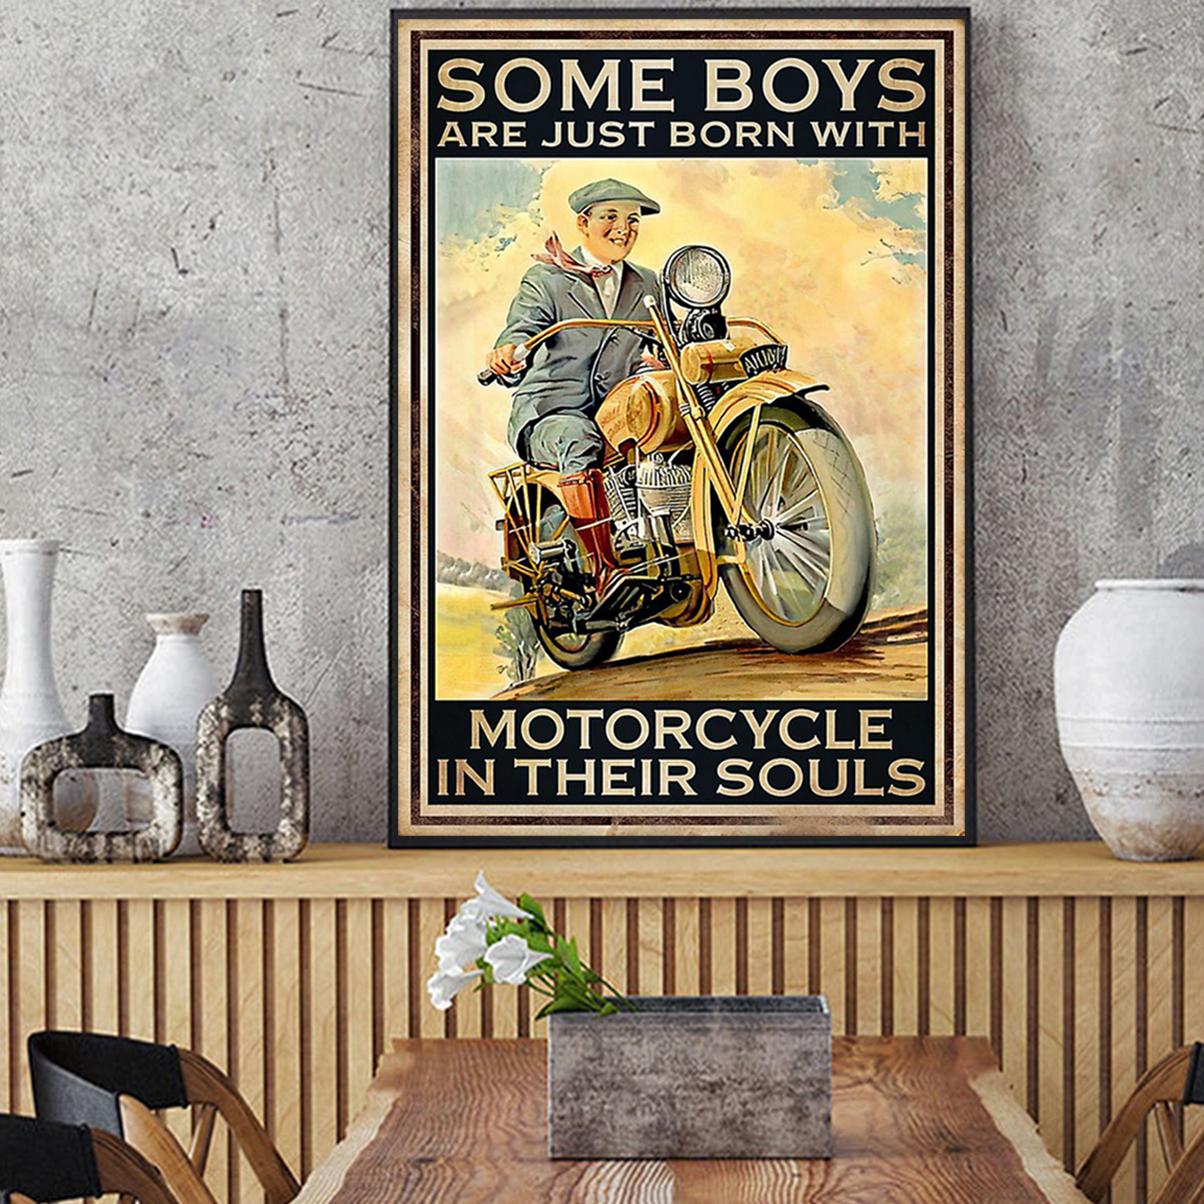 Some boys are just born with motorcycle in their souls poster A3